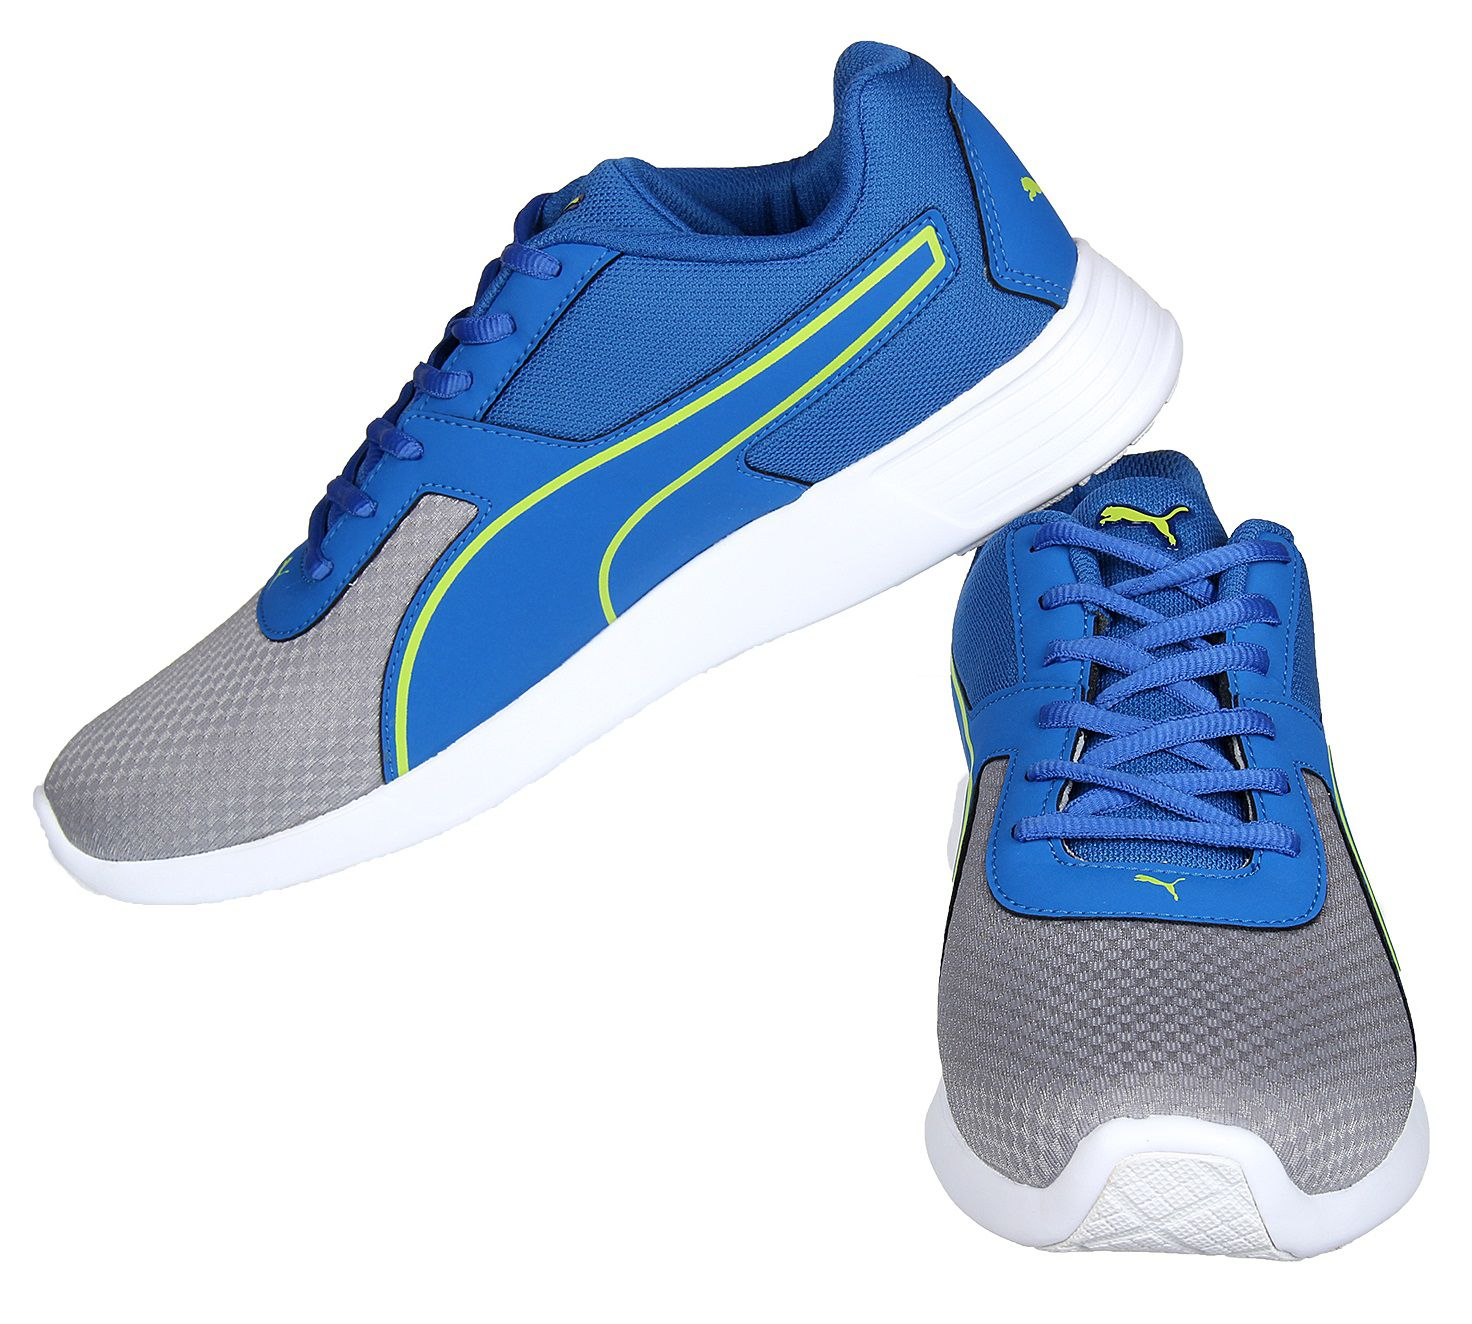 Puma Men Puma Kor IDP Blue Running Shoes - Buy Puma Men Puma Kor IDP Blue  Running Shoes Online at Best Prices in India on Snapdeal 2b39e58b9